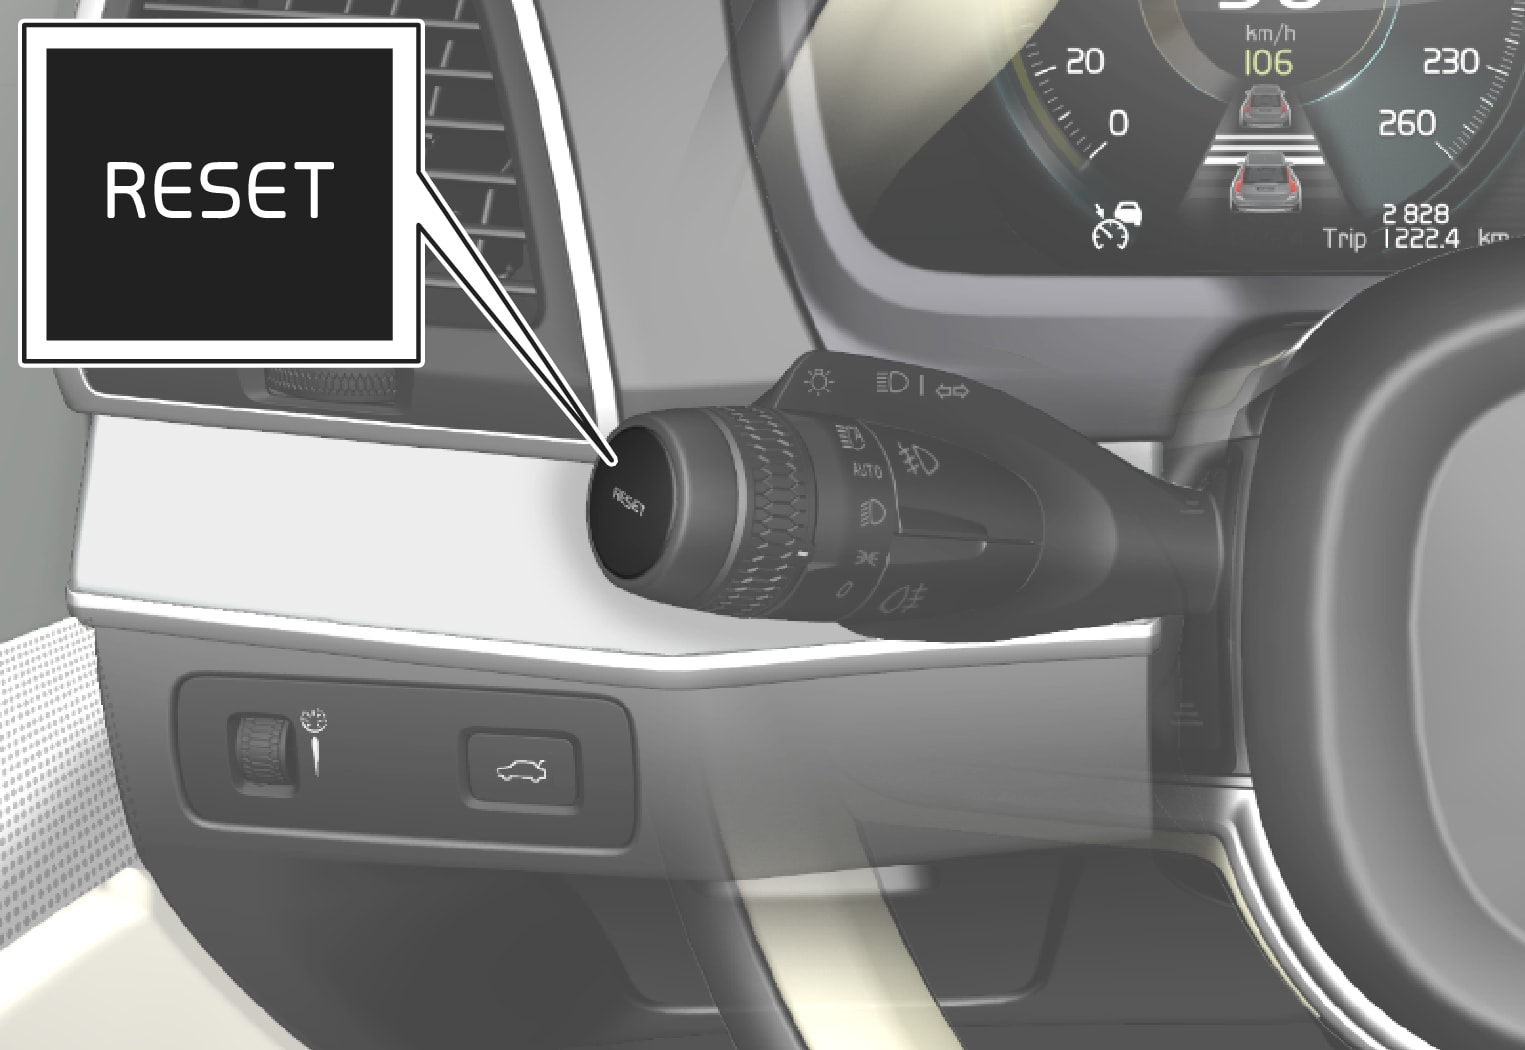 P5-1507-reset button left stalk on steering wheel